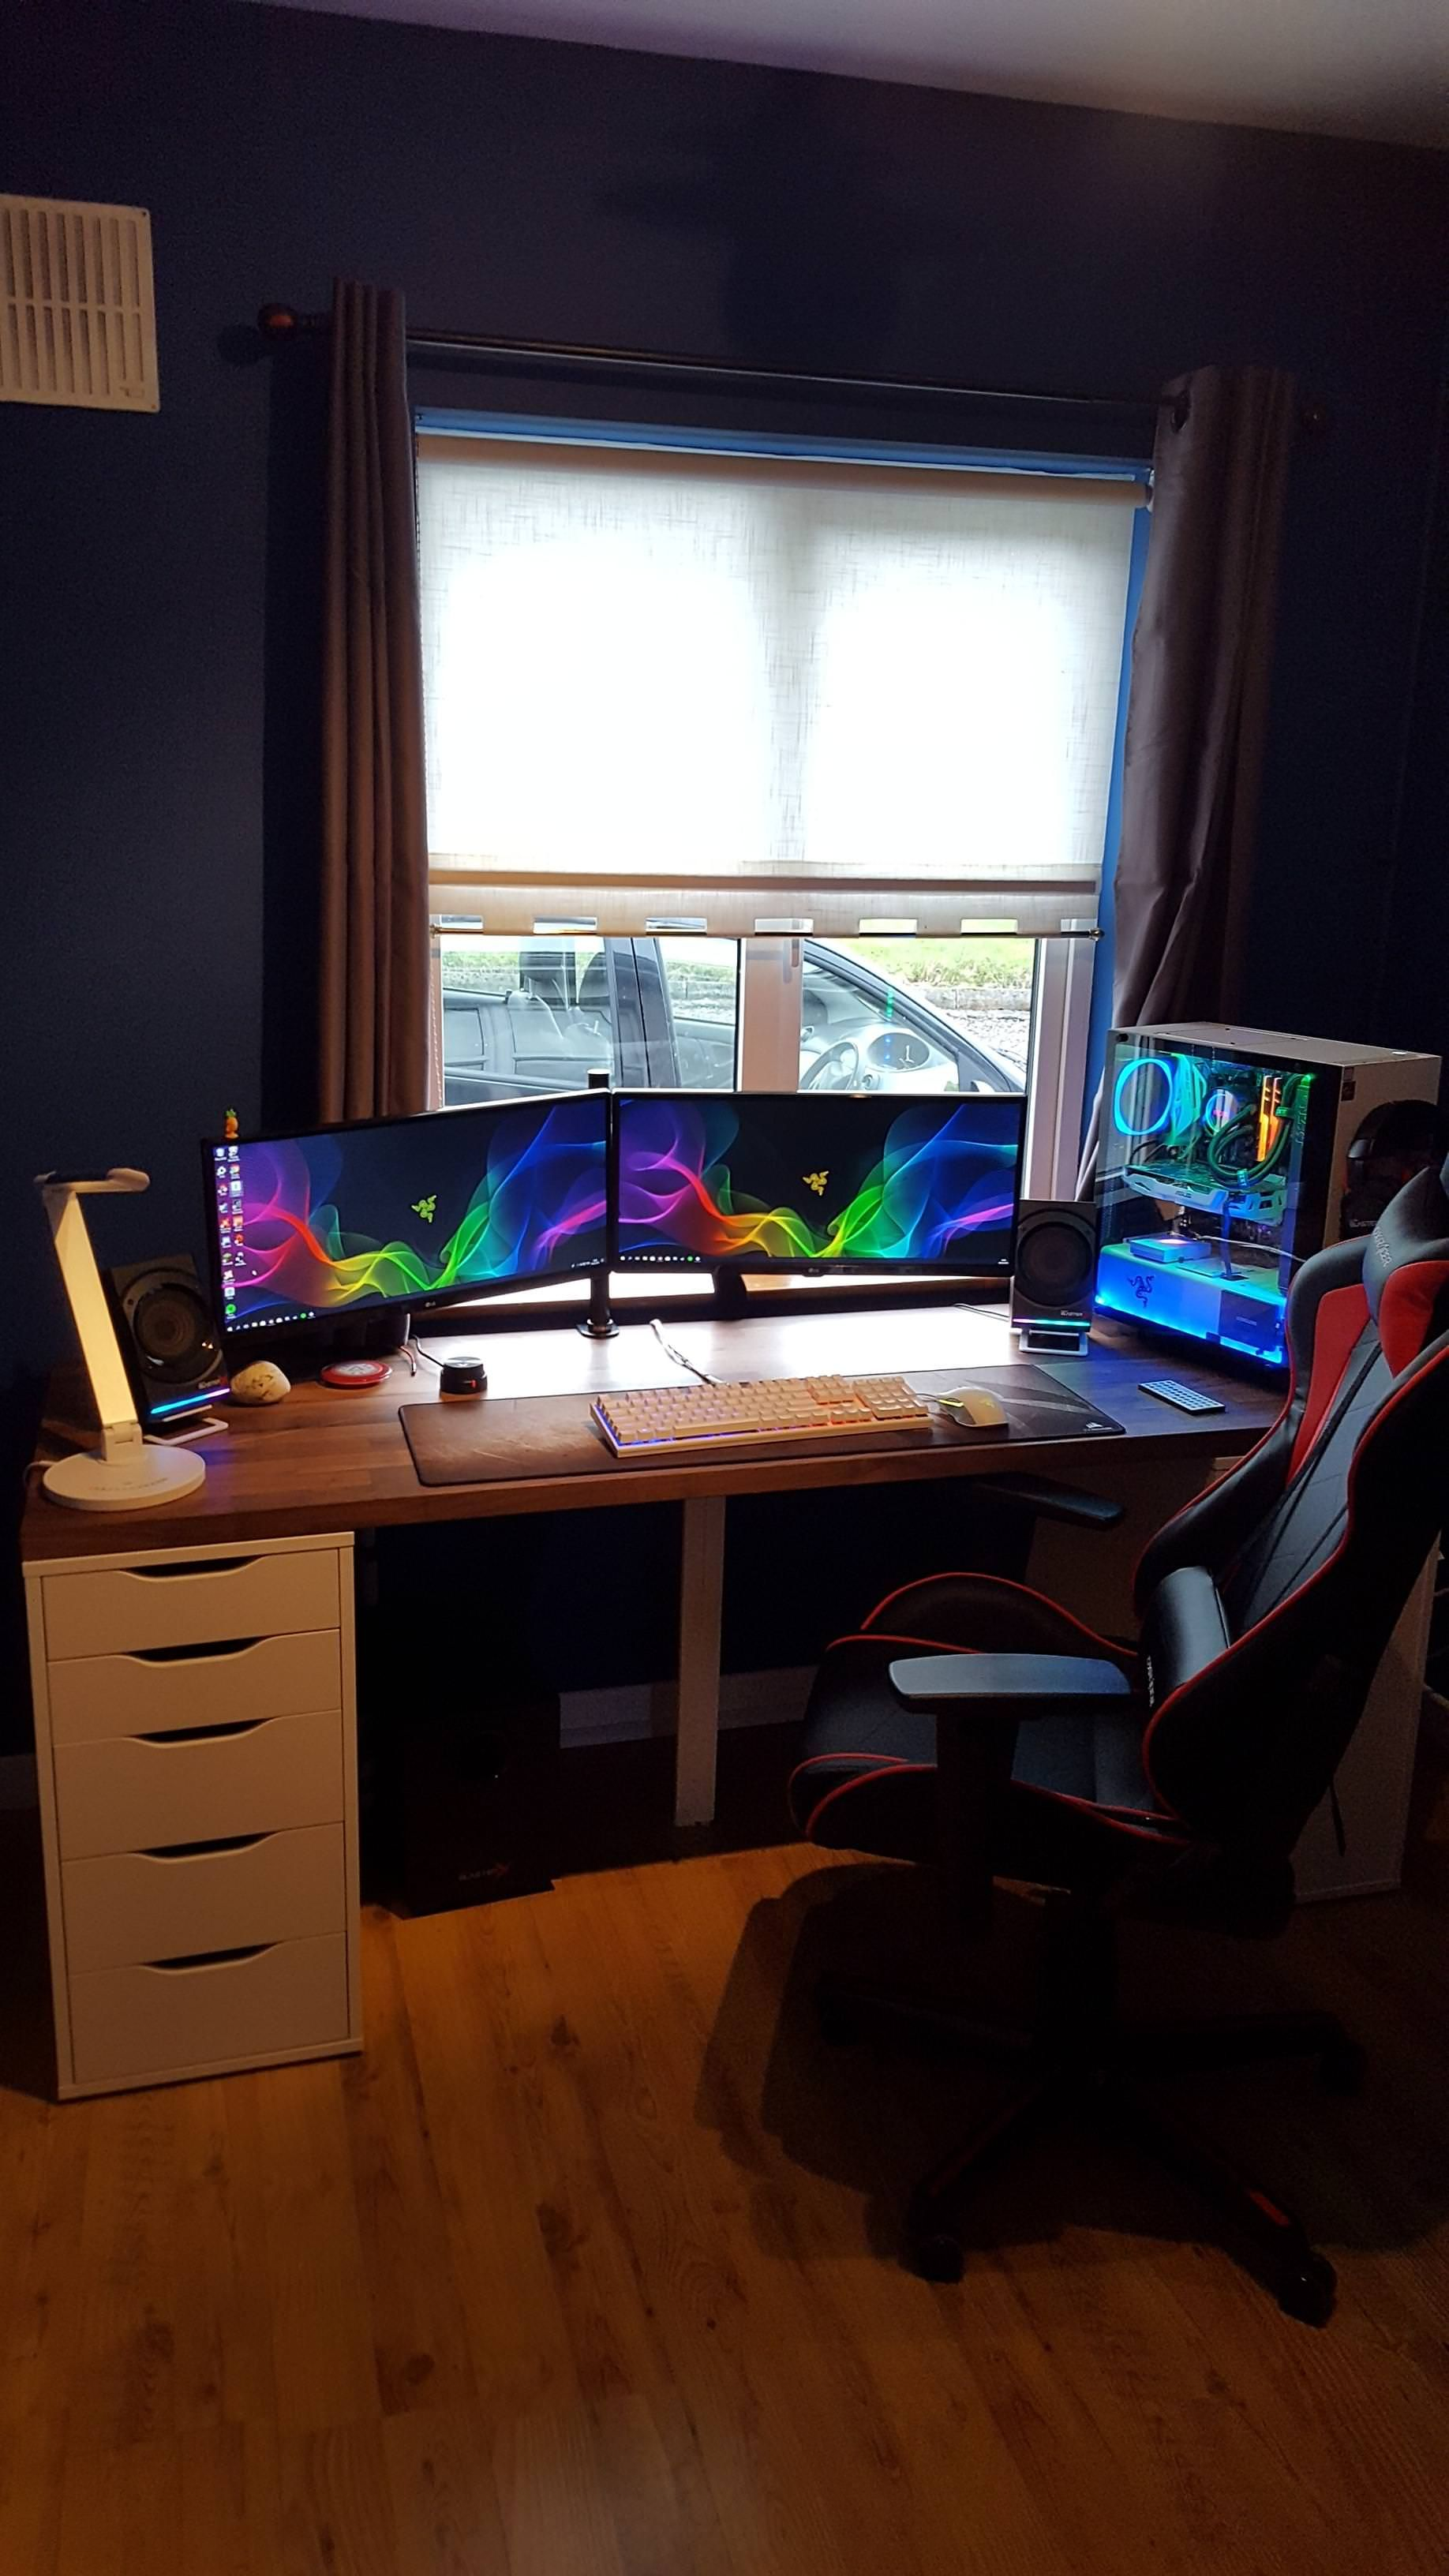 Pin By Jose Anderson On Gaming Pc In 2019 Pinterest Room Game